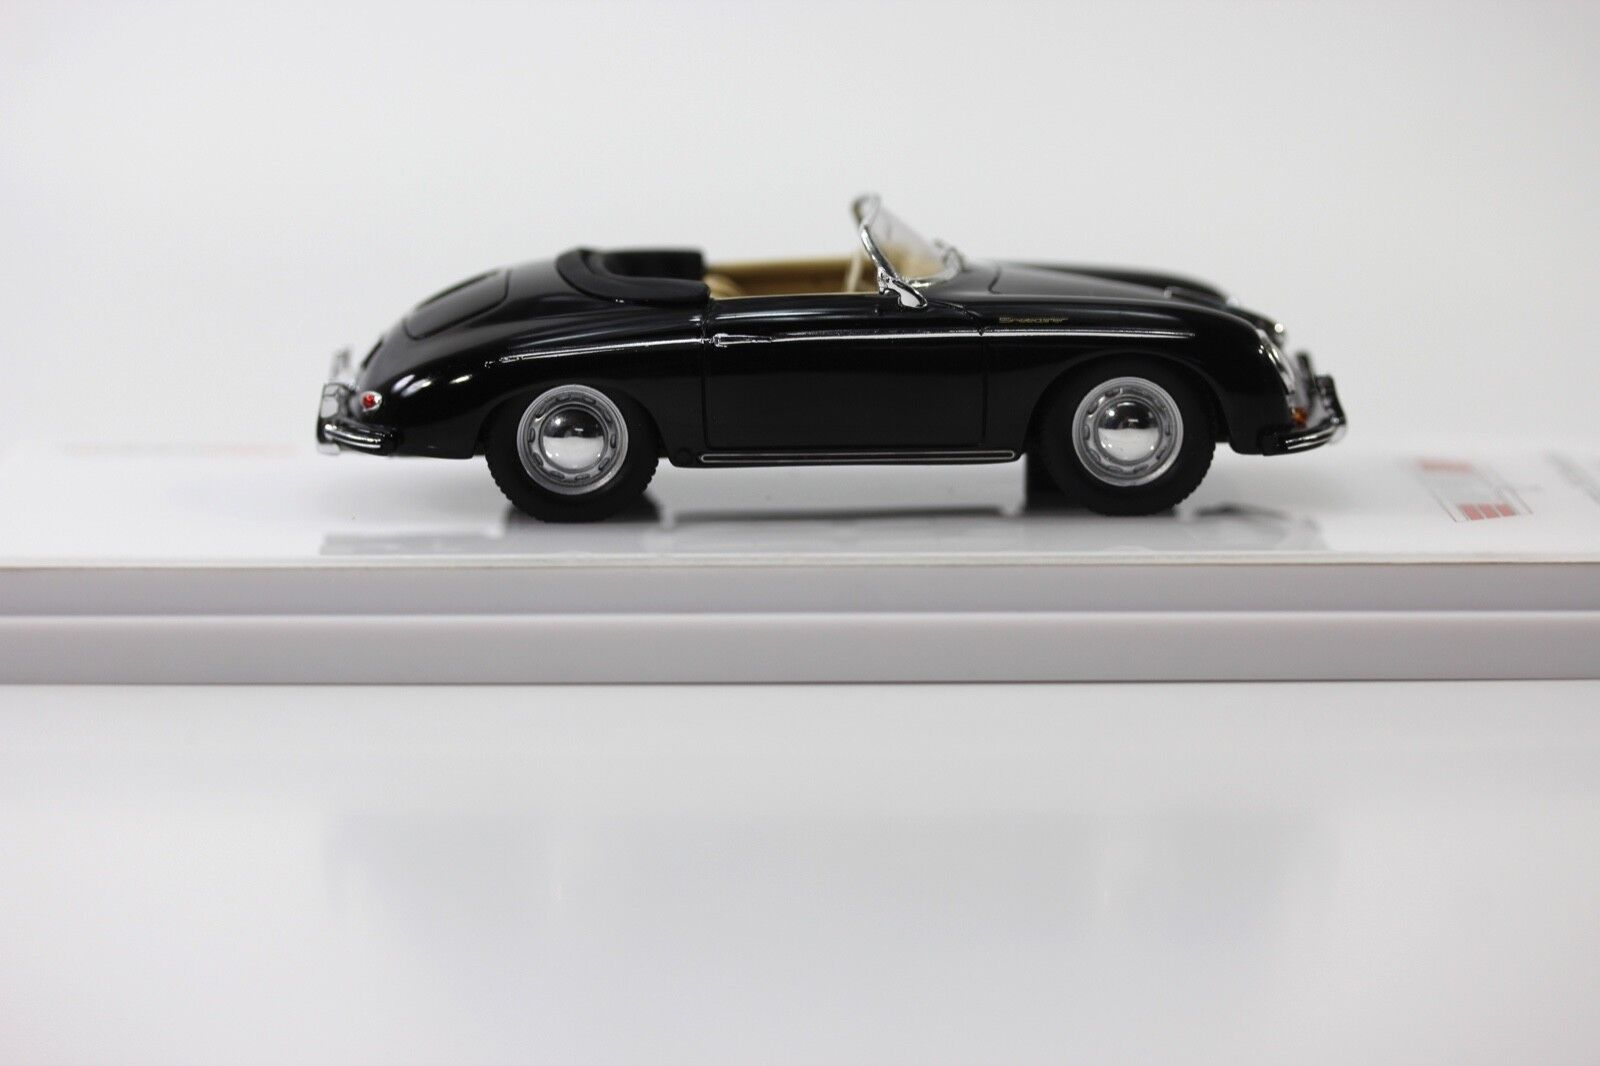 Porsche 356 Speedster Intermeccanica Top Gun Charlie 1986 True Scale TSM 430263